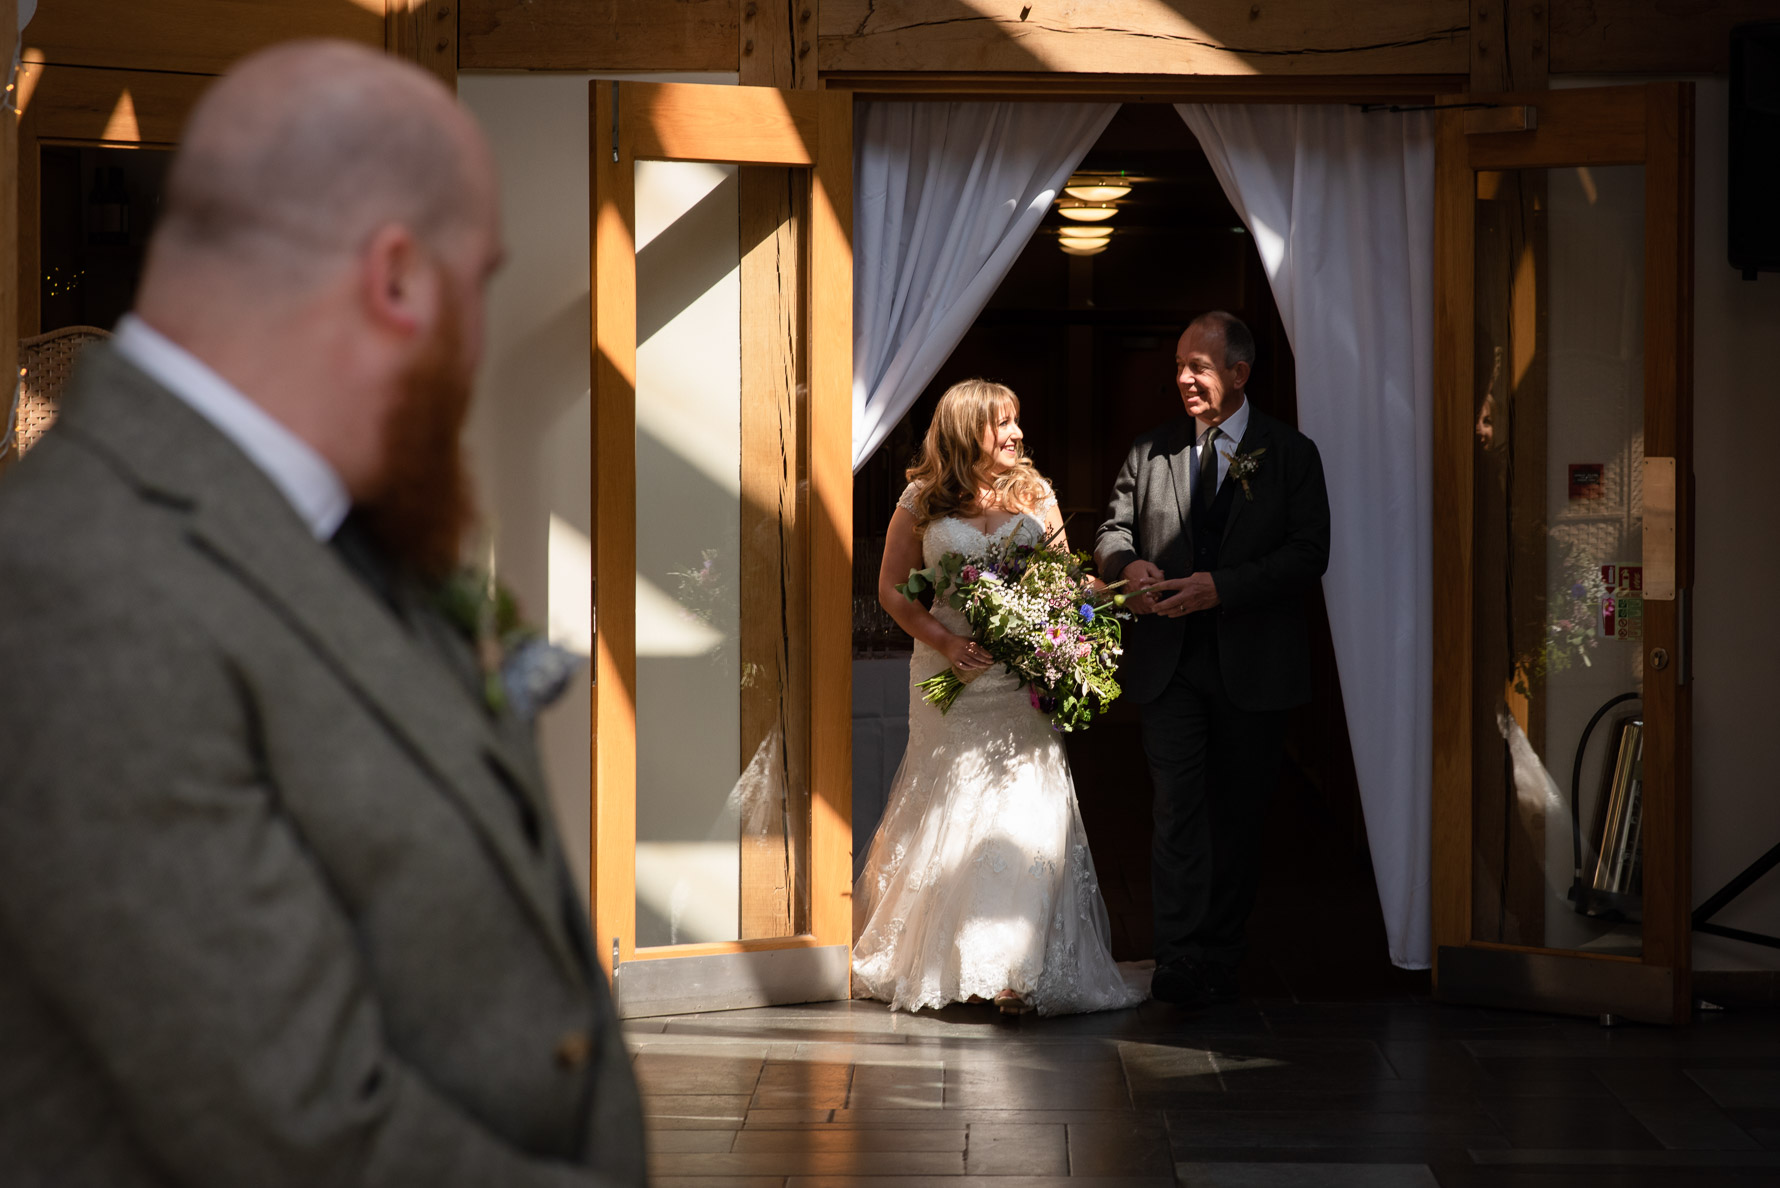 Bride arrives with Dad in good light